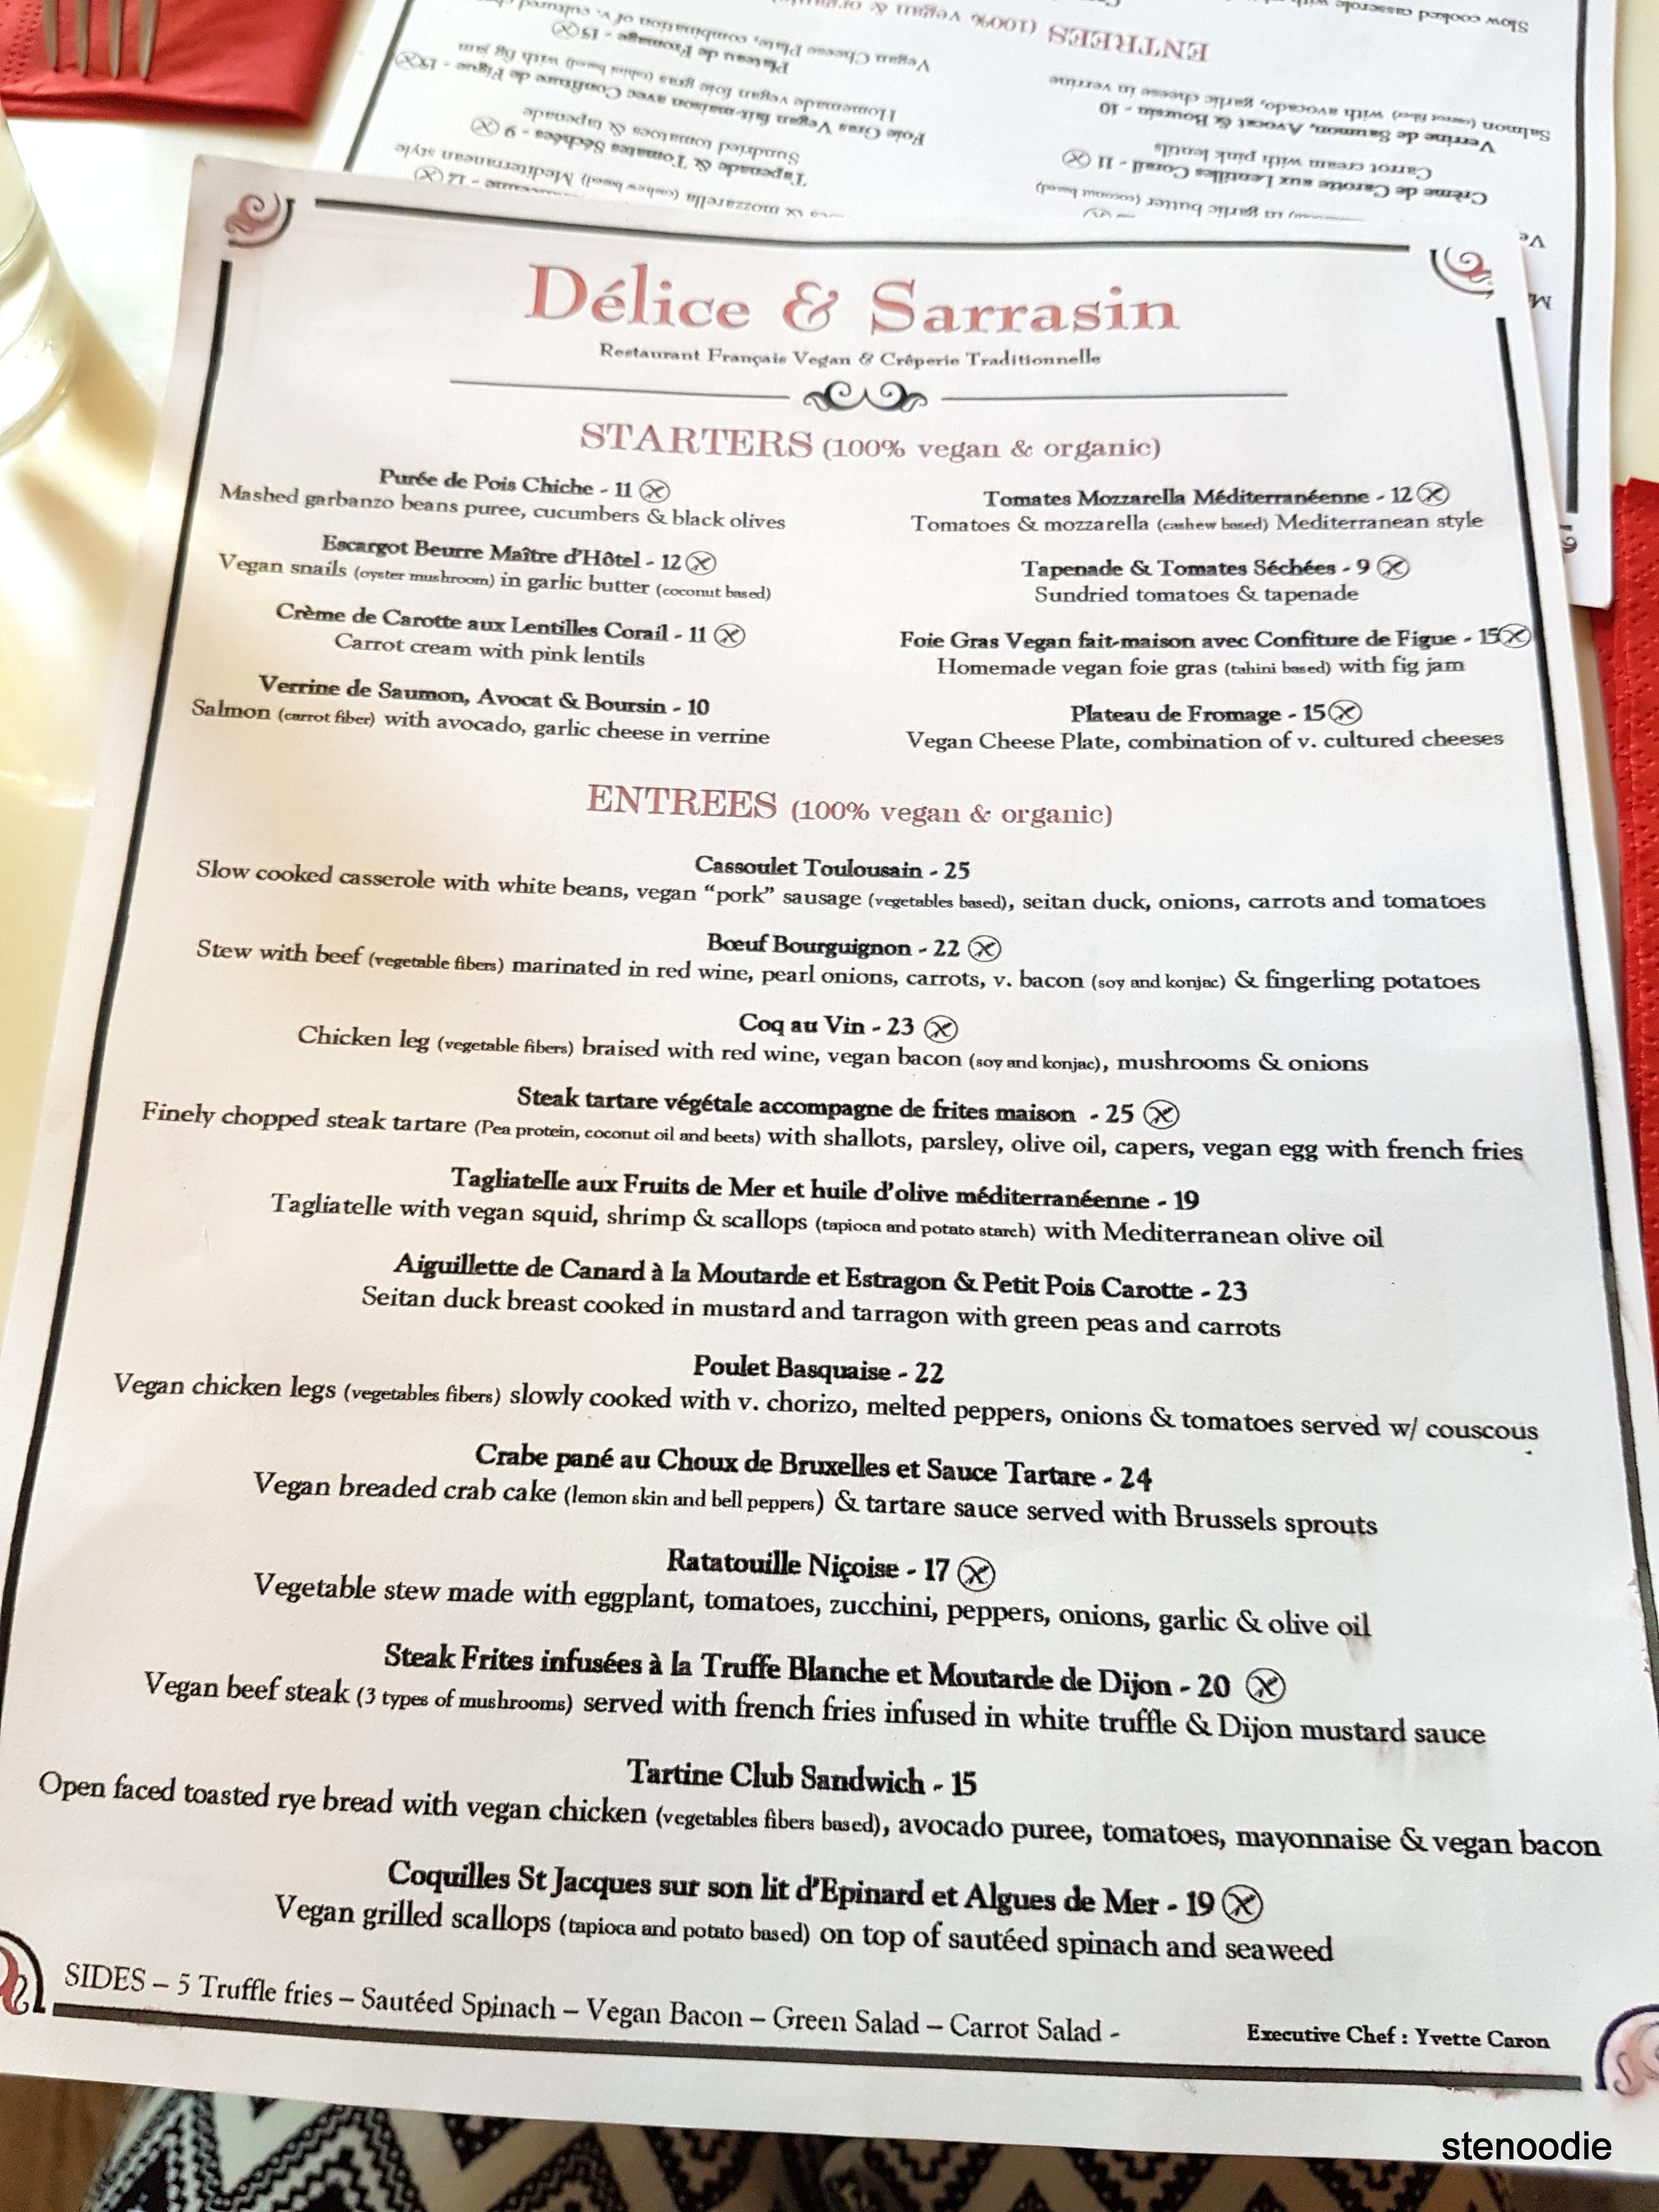 Delice & Sarrasin menu and prices